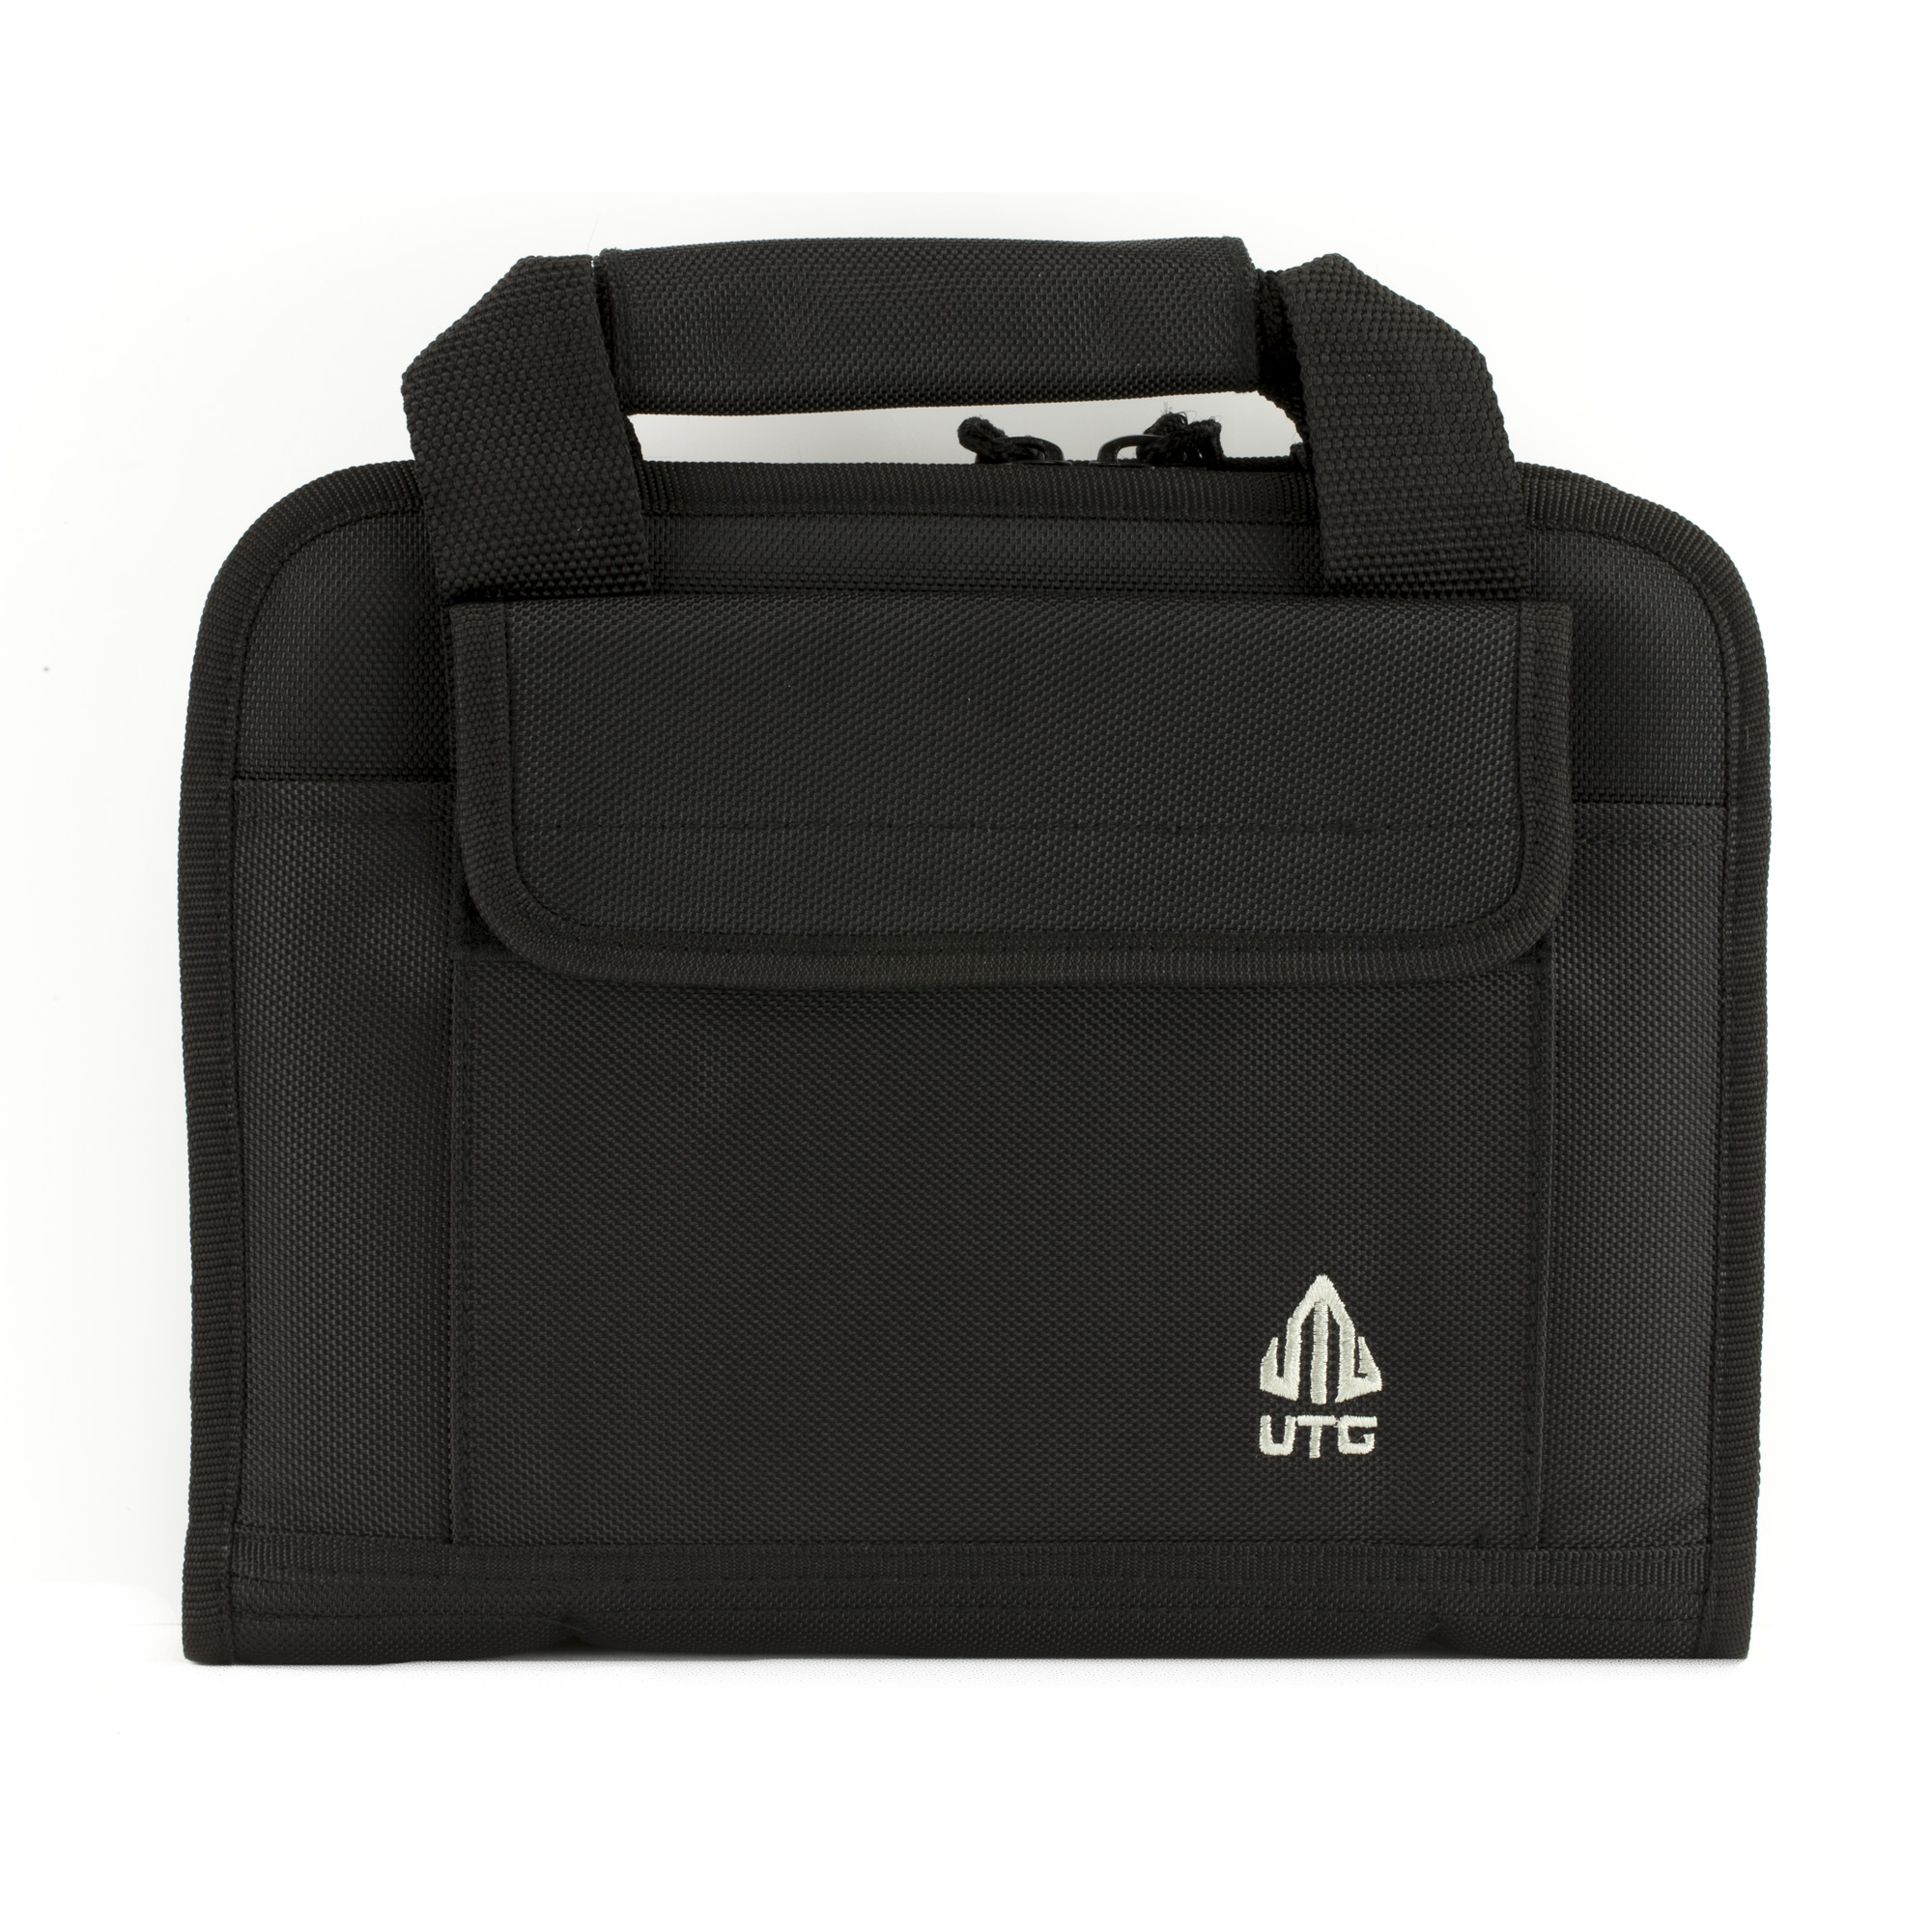 The UTG Homeland Security Deluxe Single Pistol Case features durable 1680D polyester construction and has five integral magazine pouches that fit most double and single stack magazines.